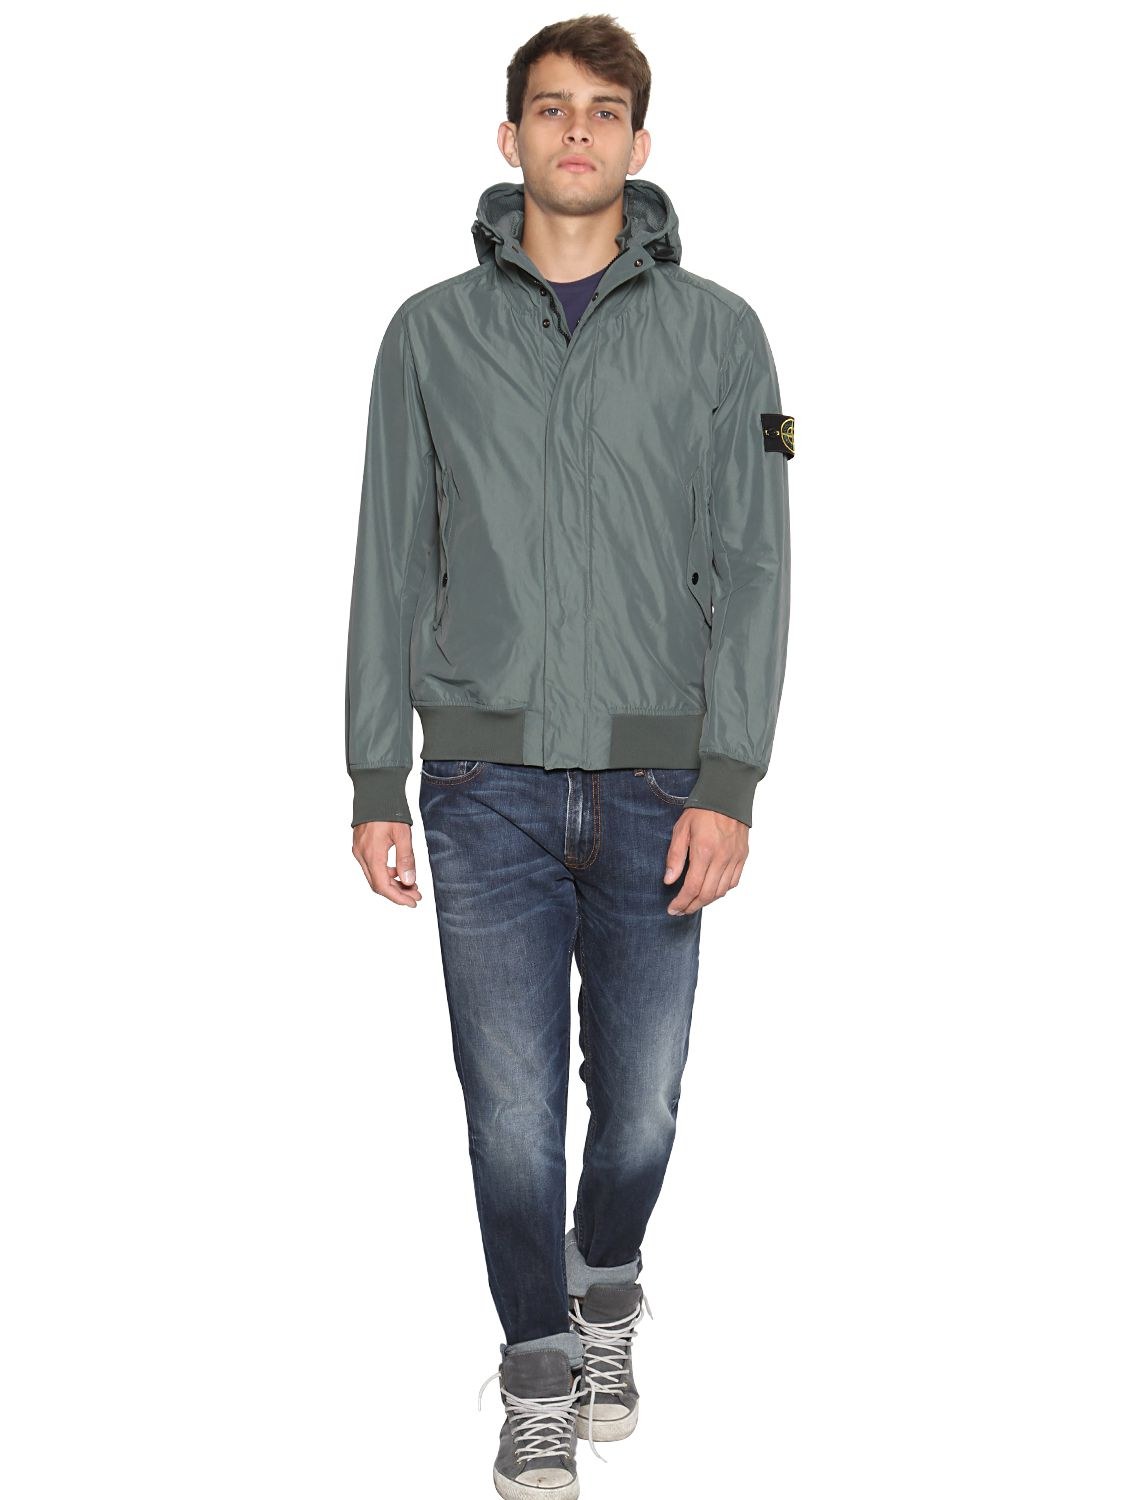 Stone island Micro Reps Casual Jacket in Gray for Men - Lyst